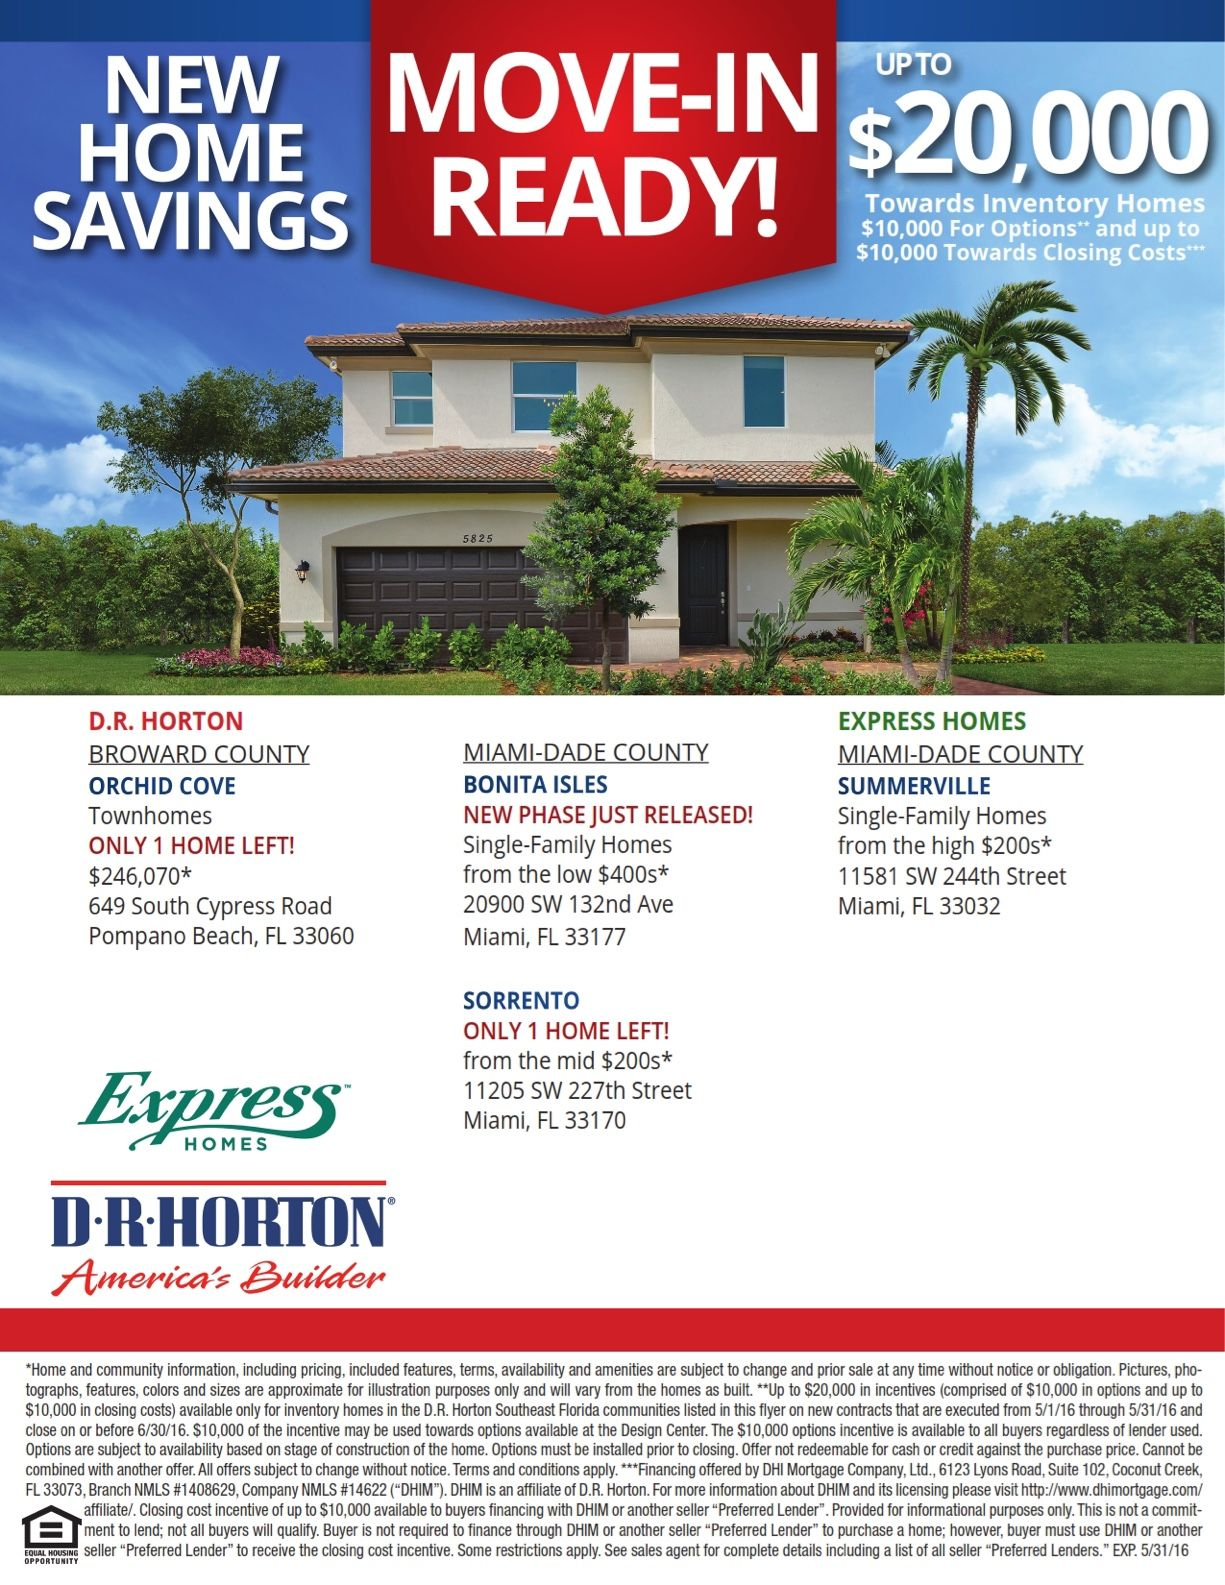 Incredible $20k incentives on move in ready homes by DR Horton, America's #1 HomeBuilder. http://bit.ly/drhorton1